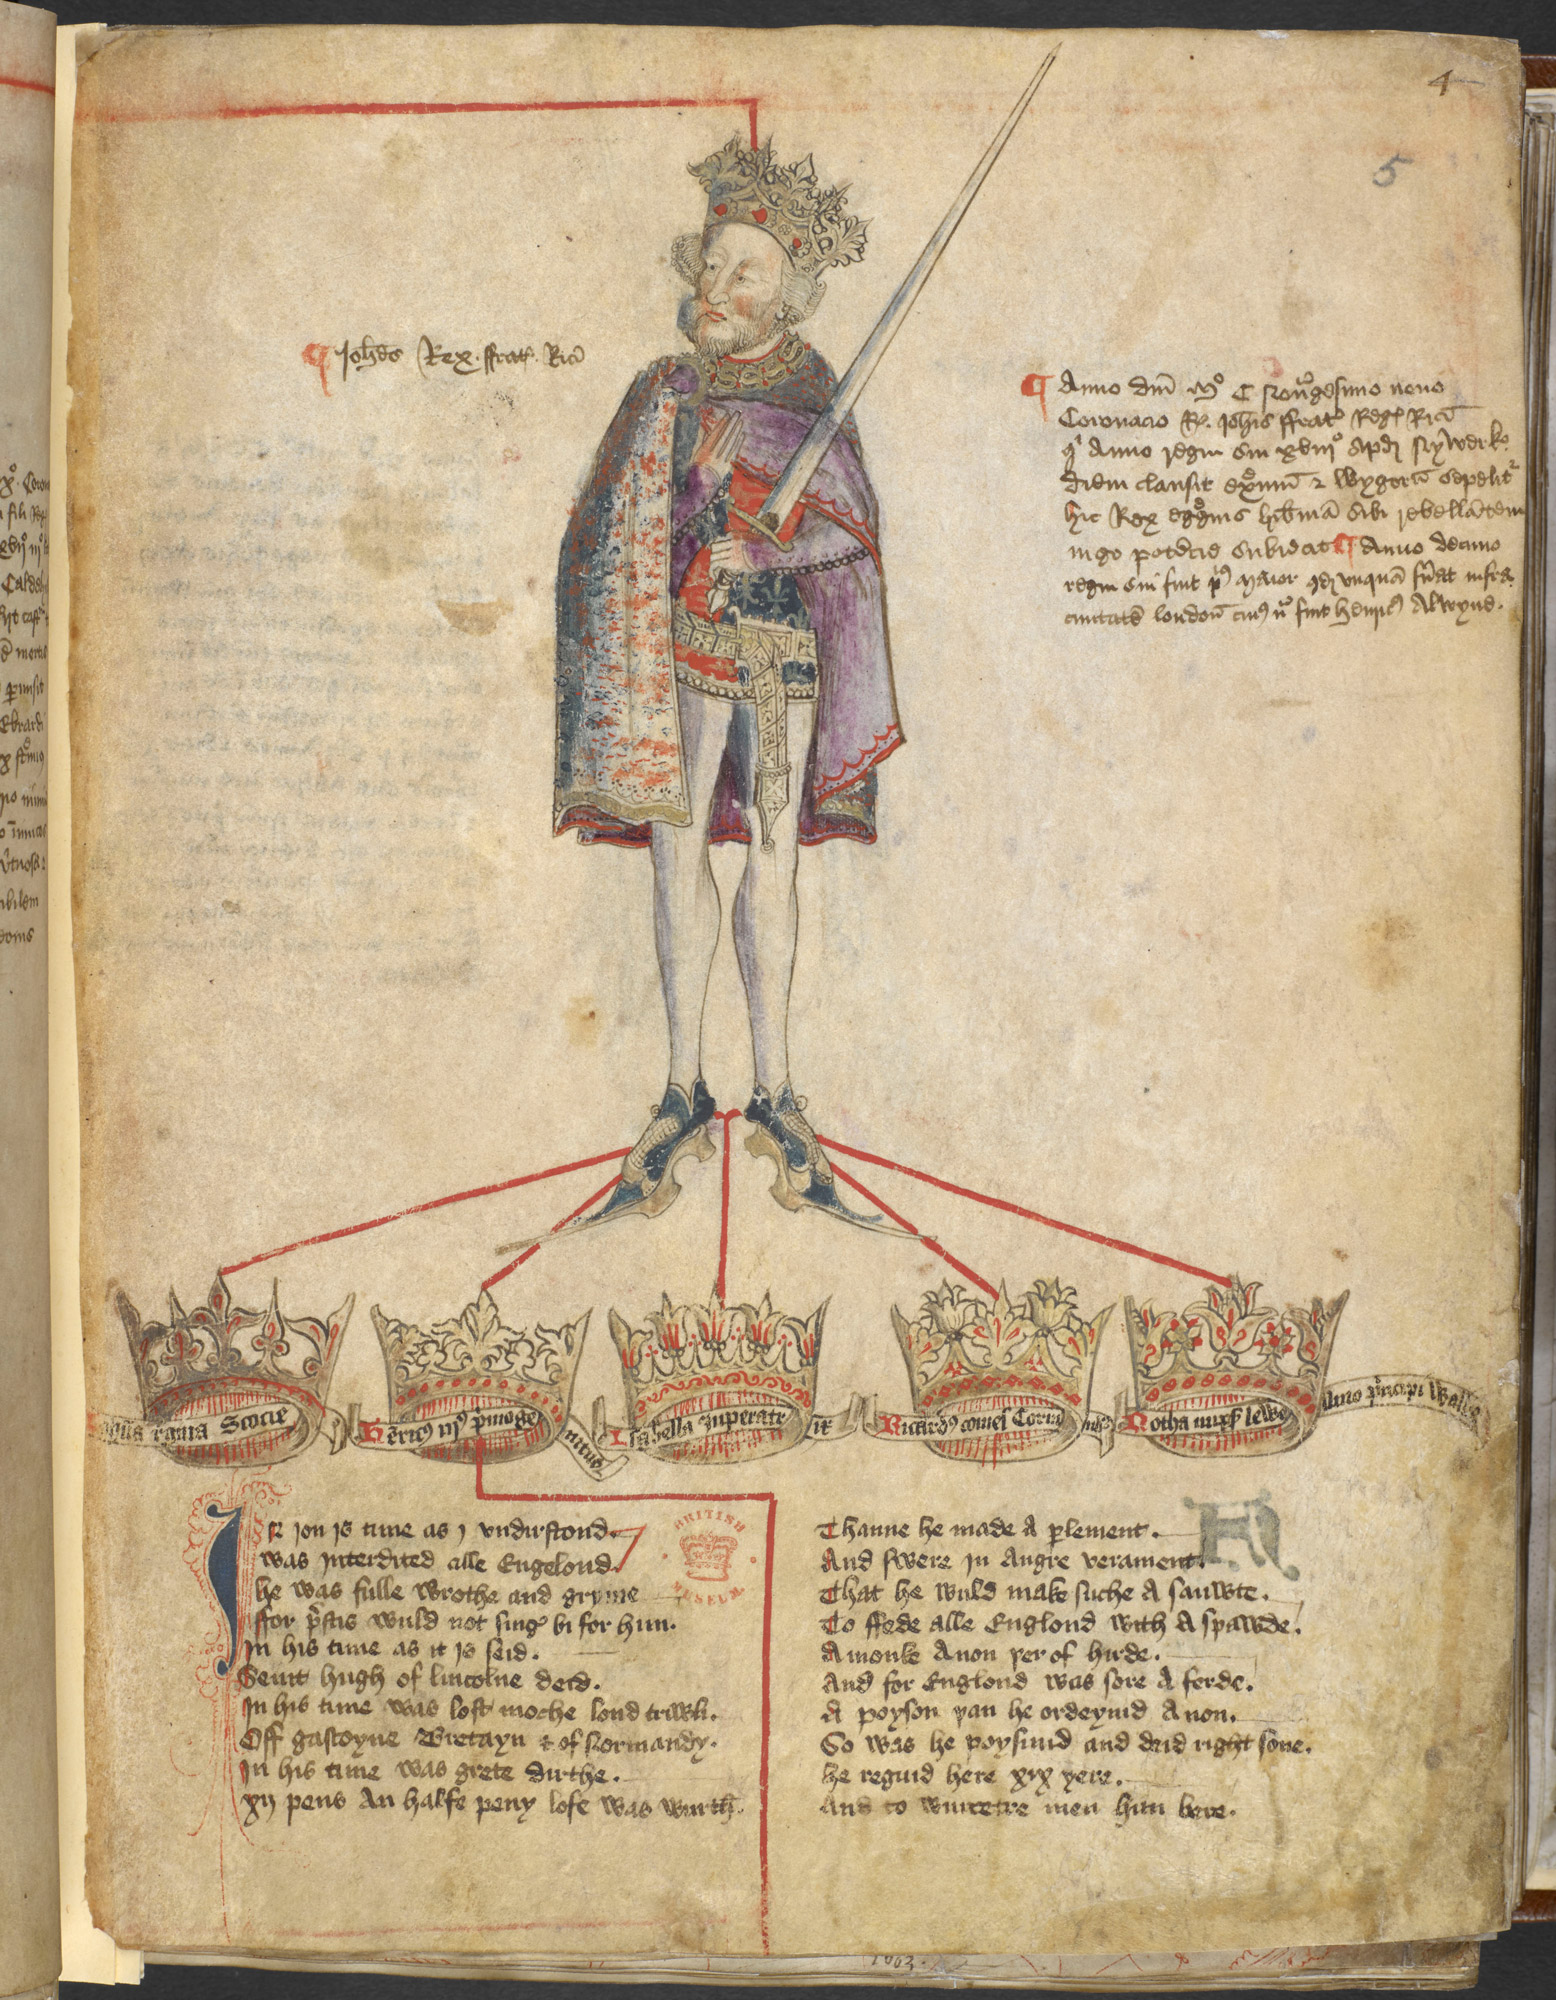 Account of King John's reign in John Lydgate's Verses on the kings of England to Henry VI